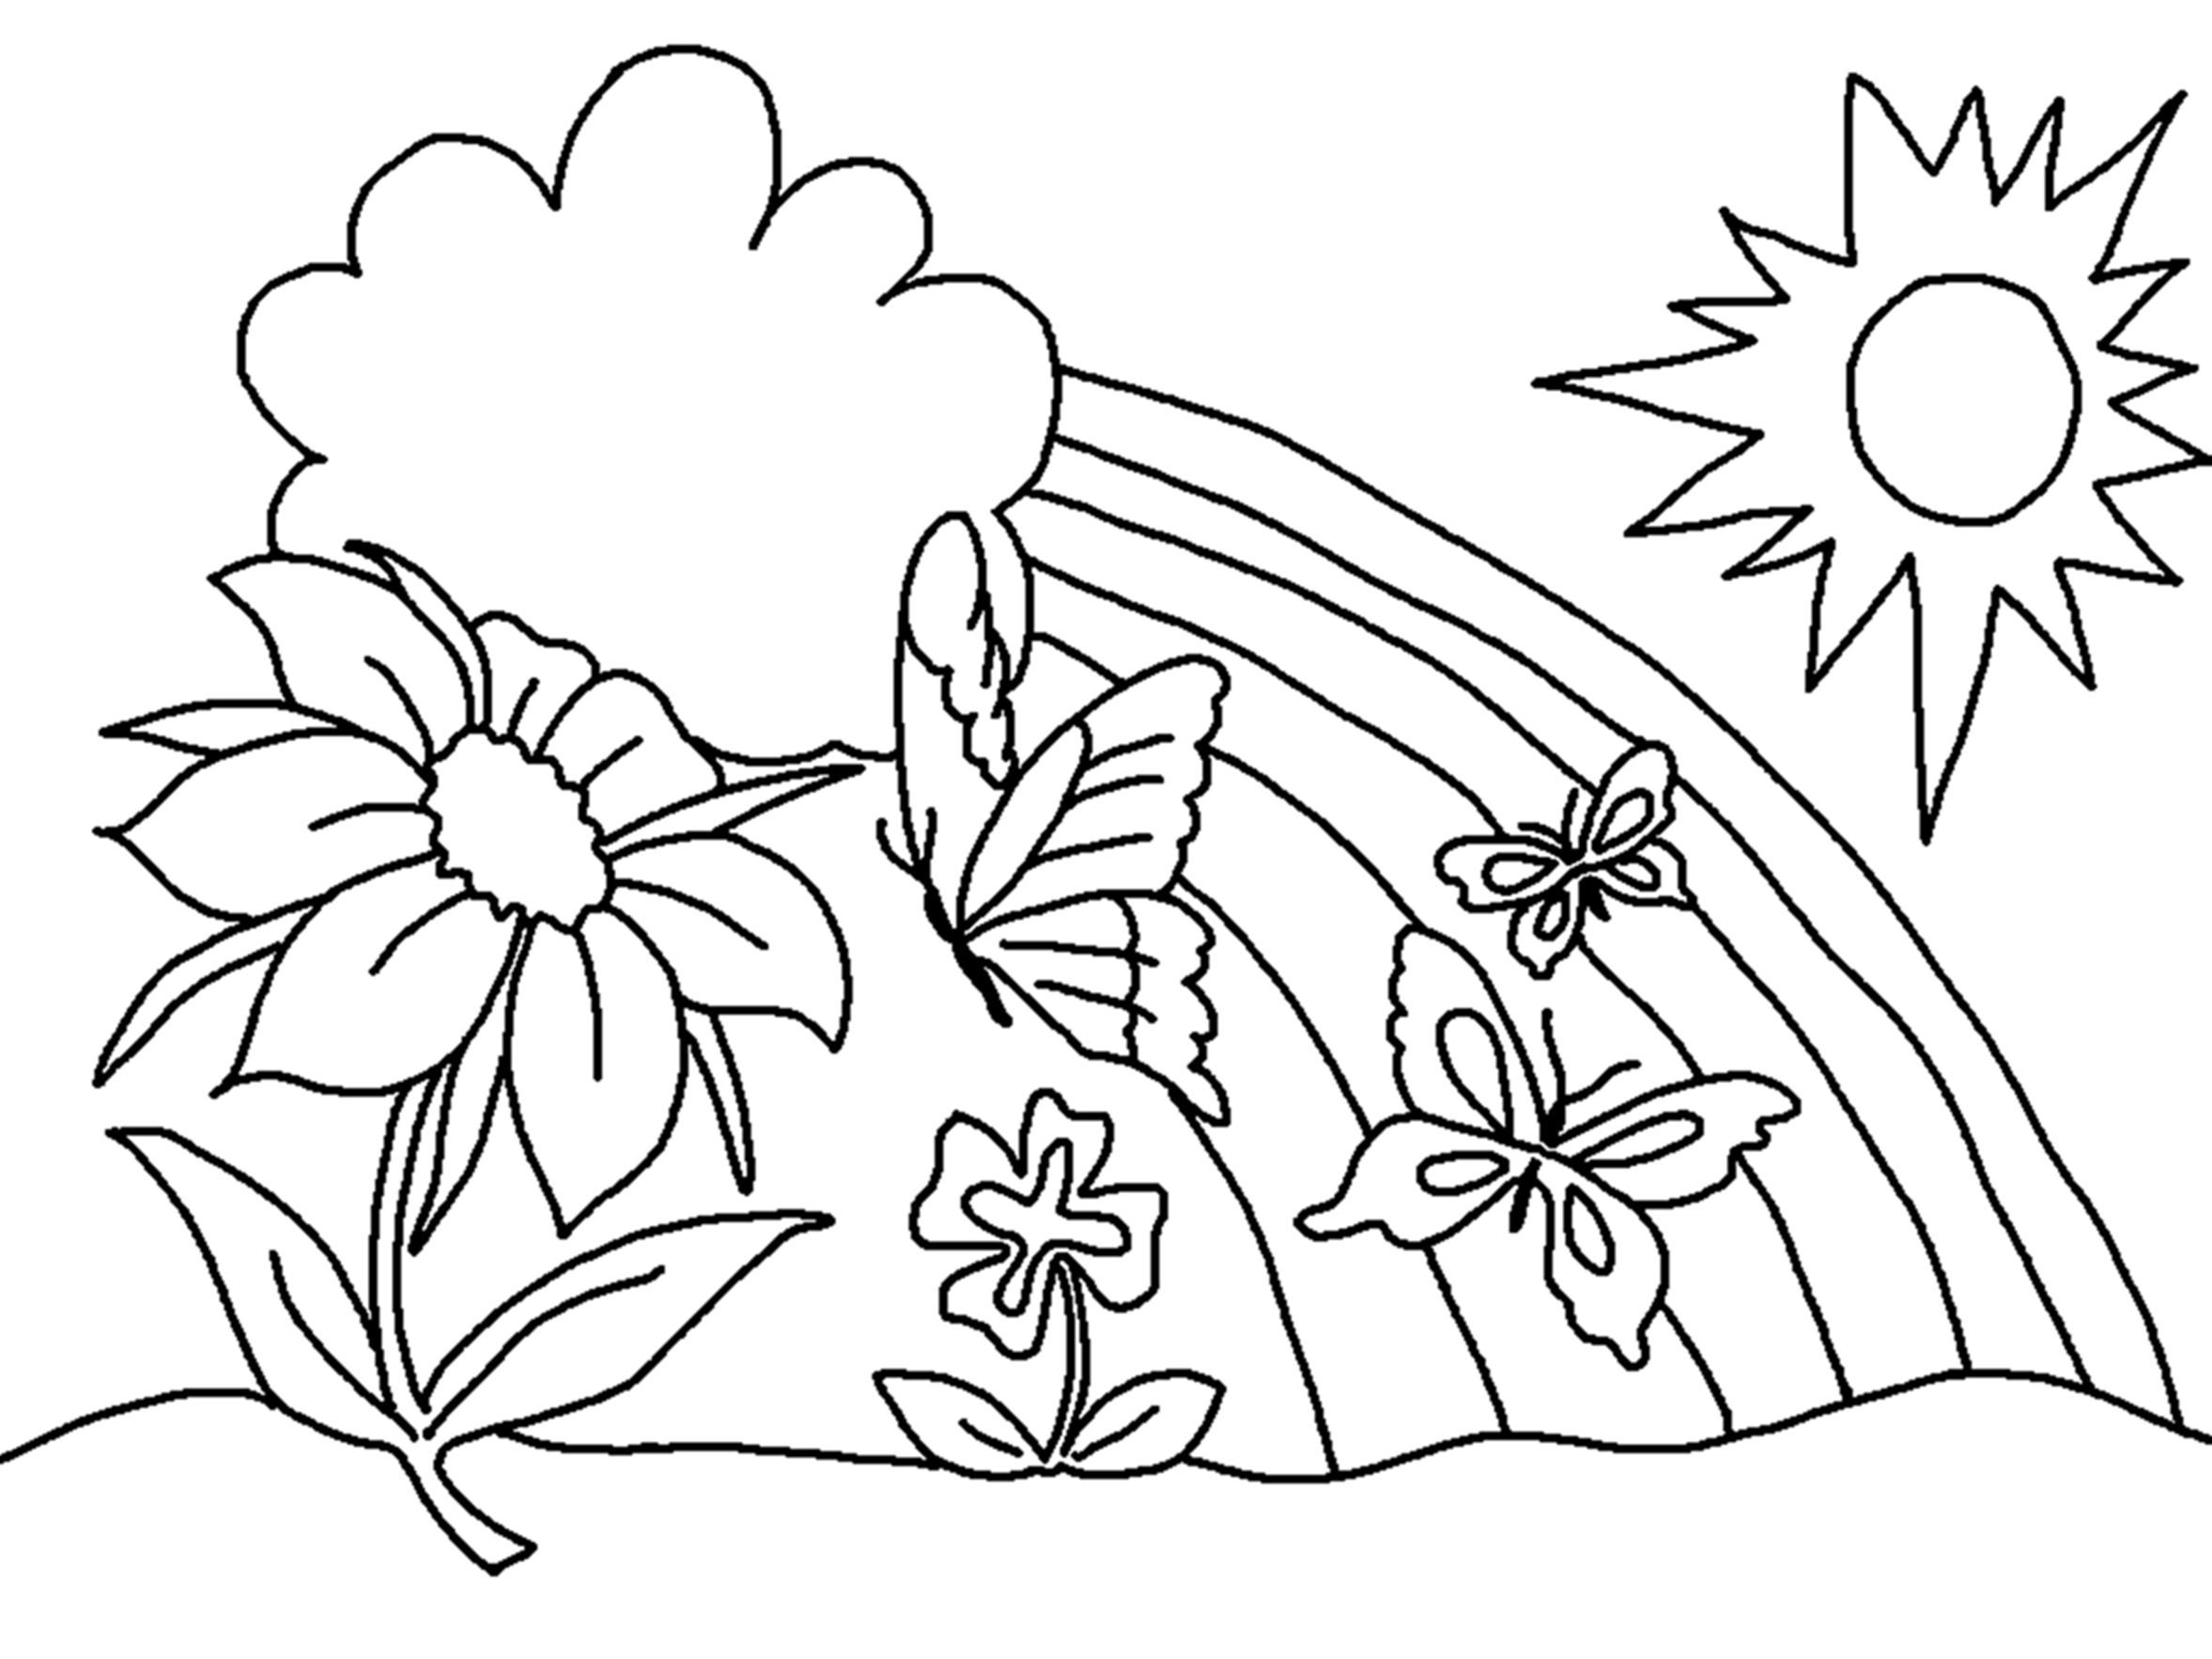 Free printable flower coloring pages for kids best for Free printable coloring pages for adults and kids